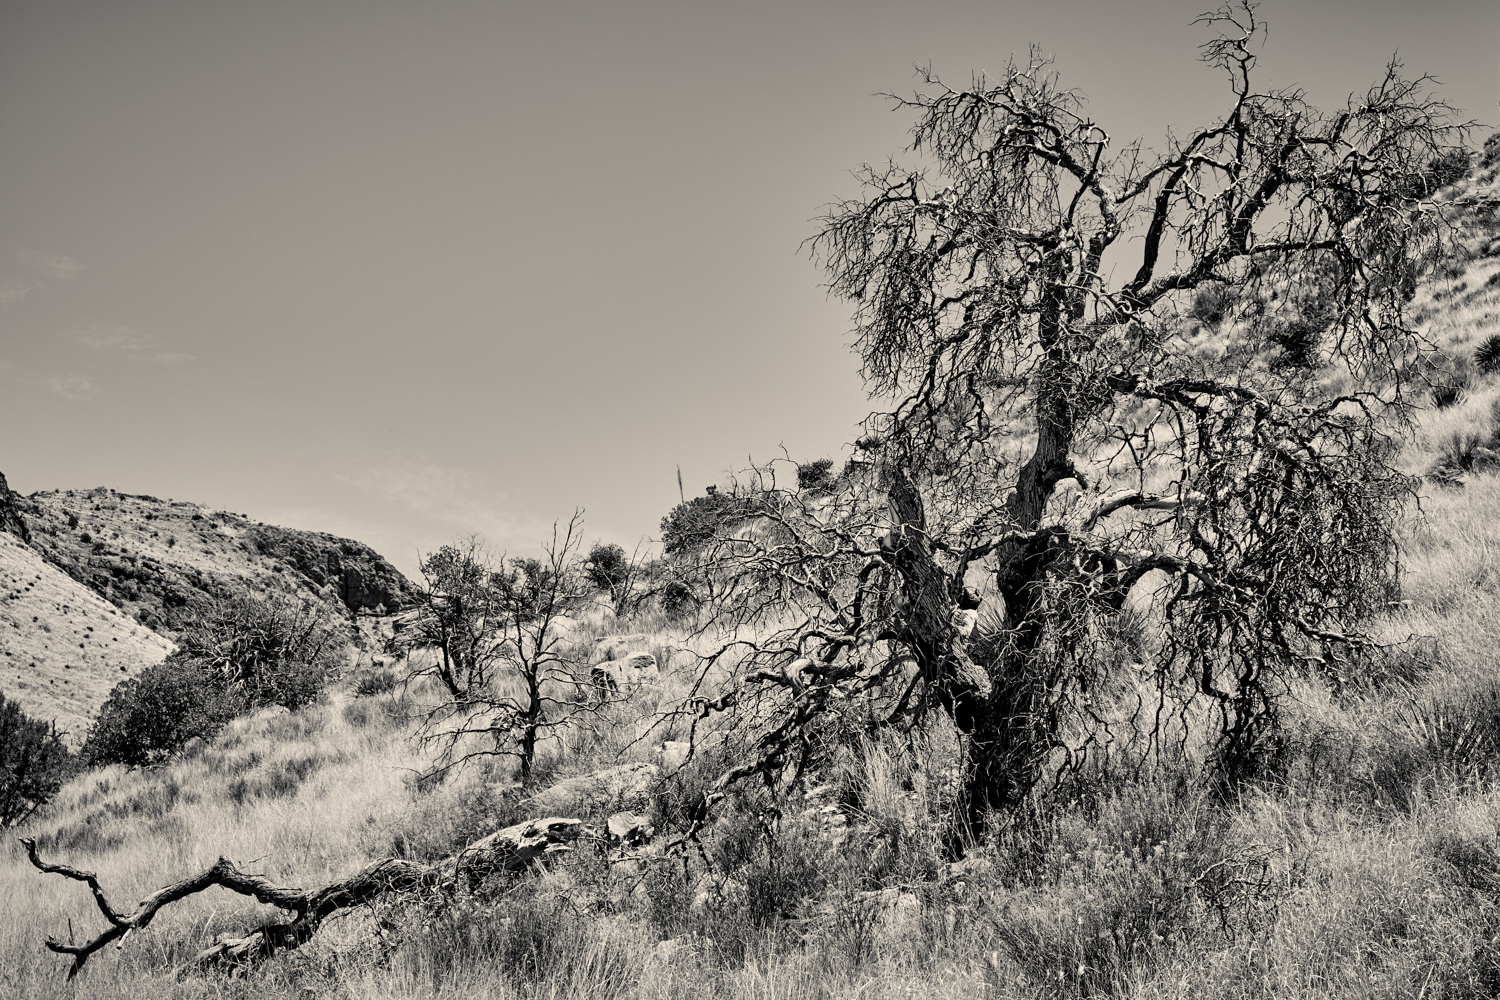 tree in Chiricahua